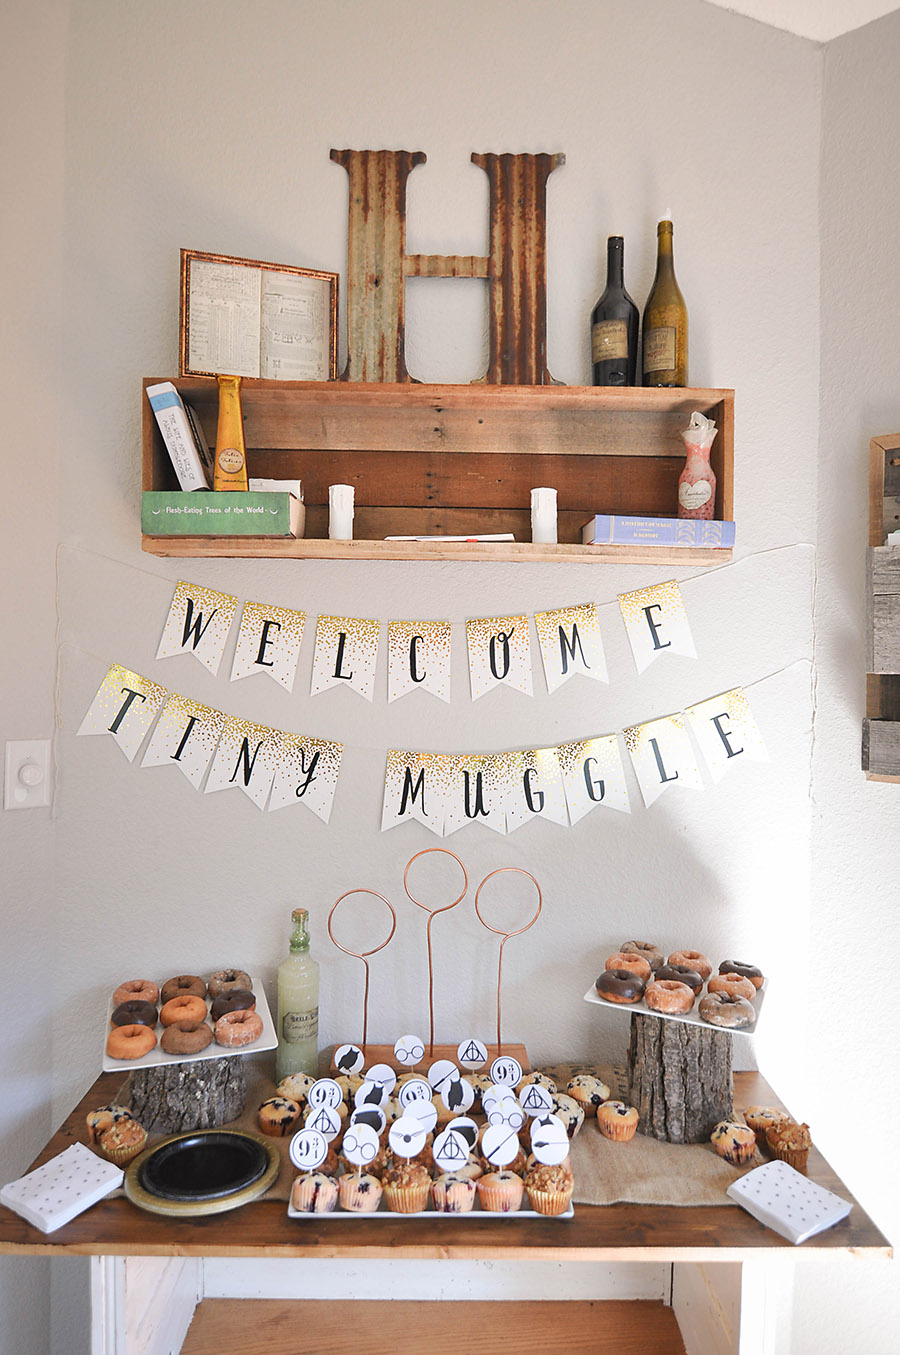 Harry Potter Baby Shower Ideas & Free Printables - Our Handcrafted Life